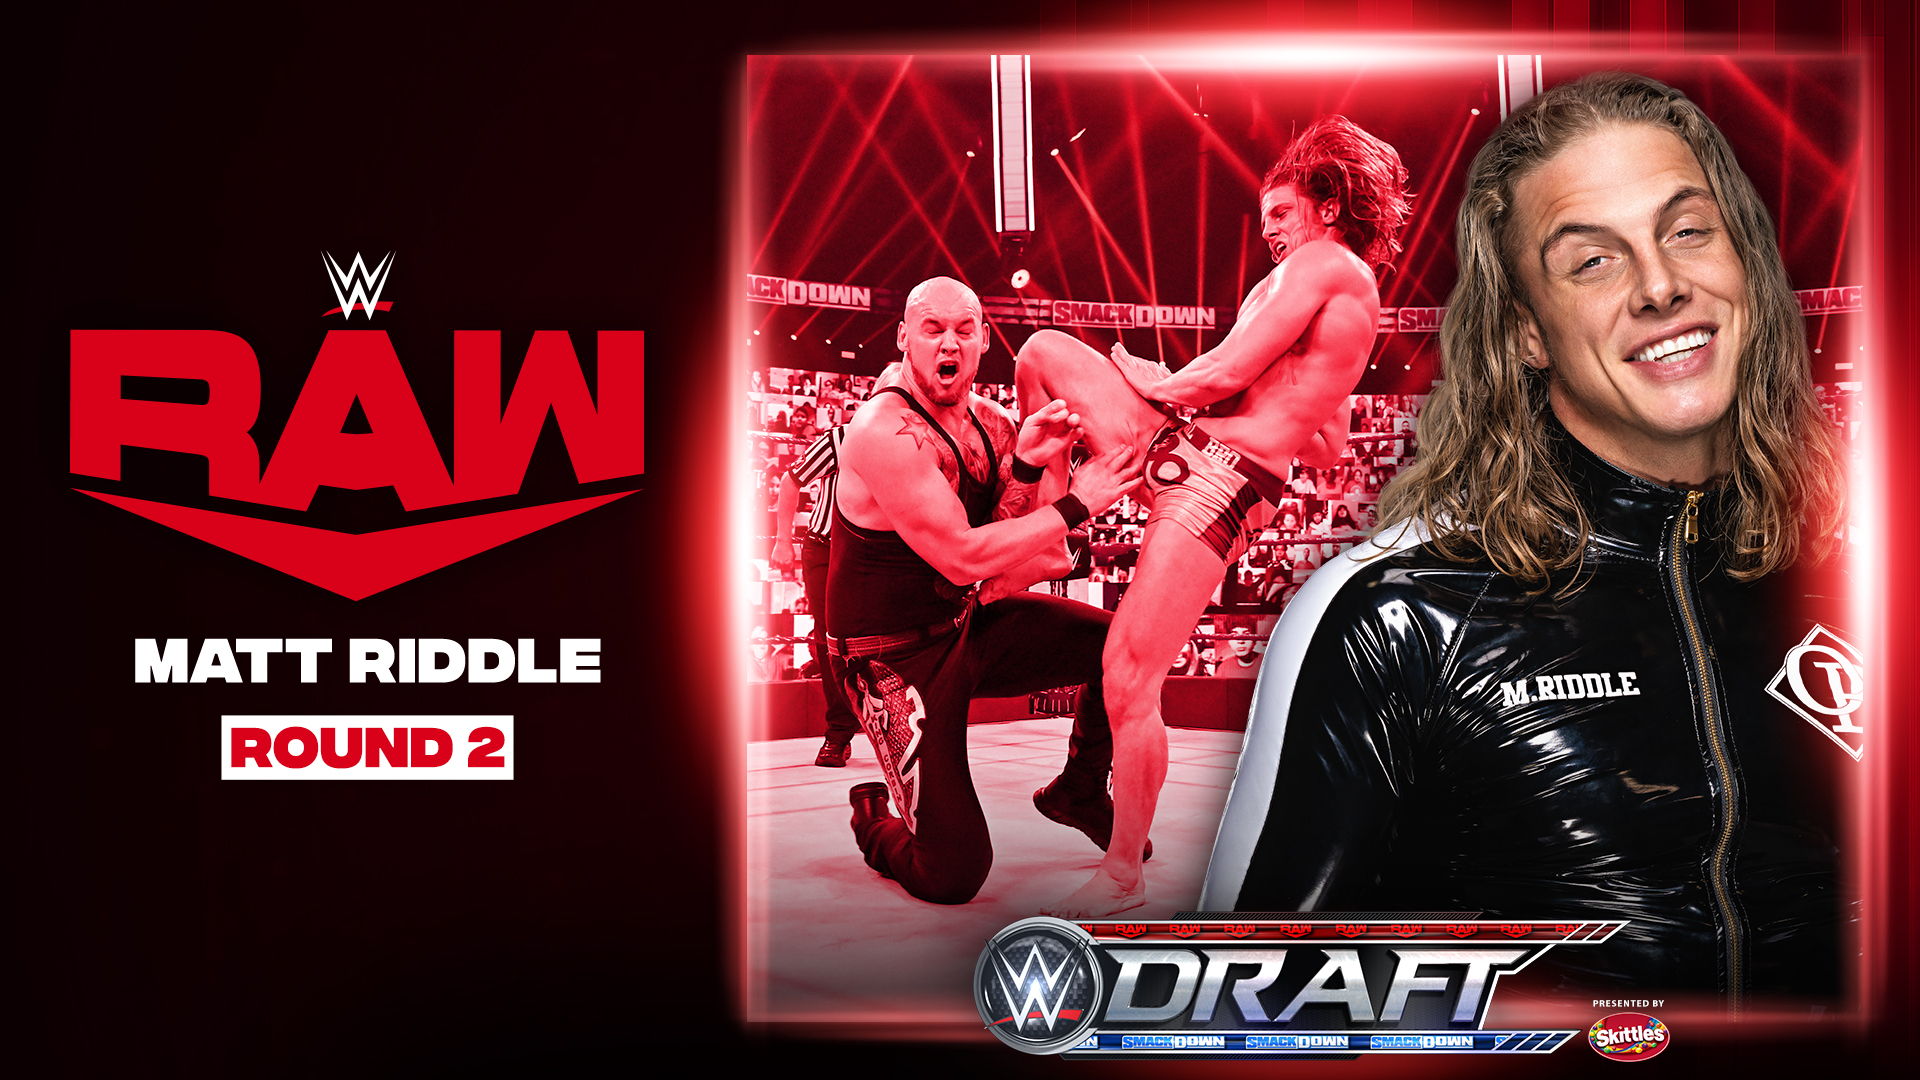 Matt Riddle drafted to WWE RAW